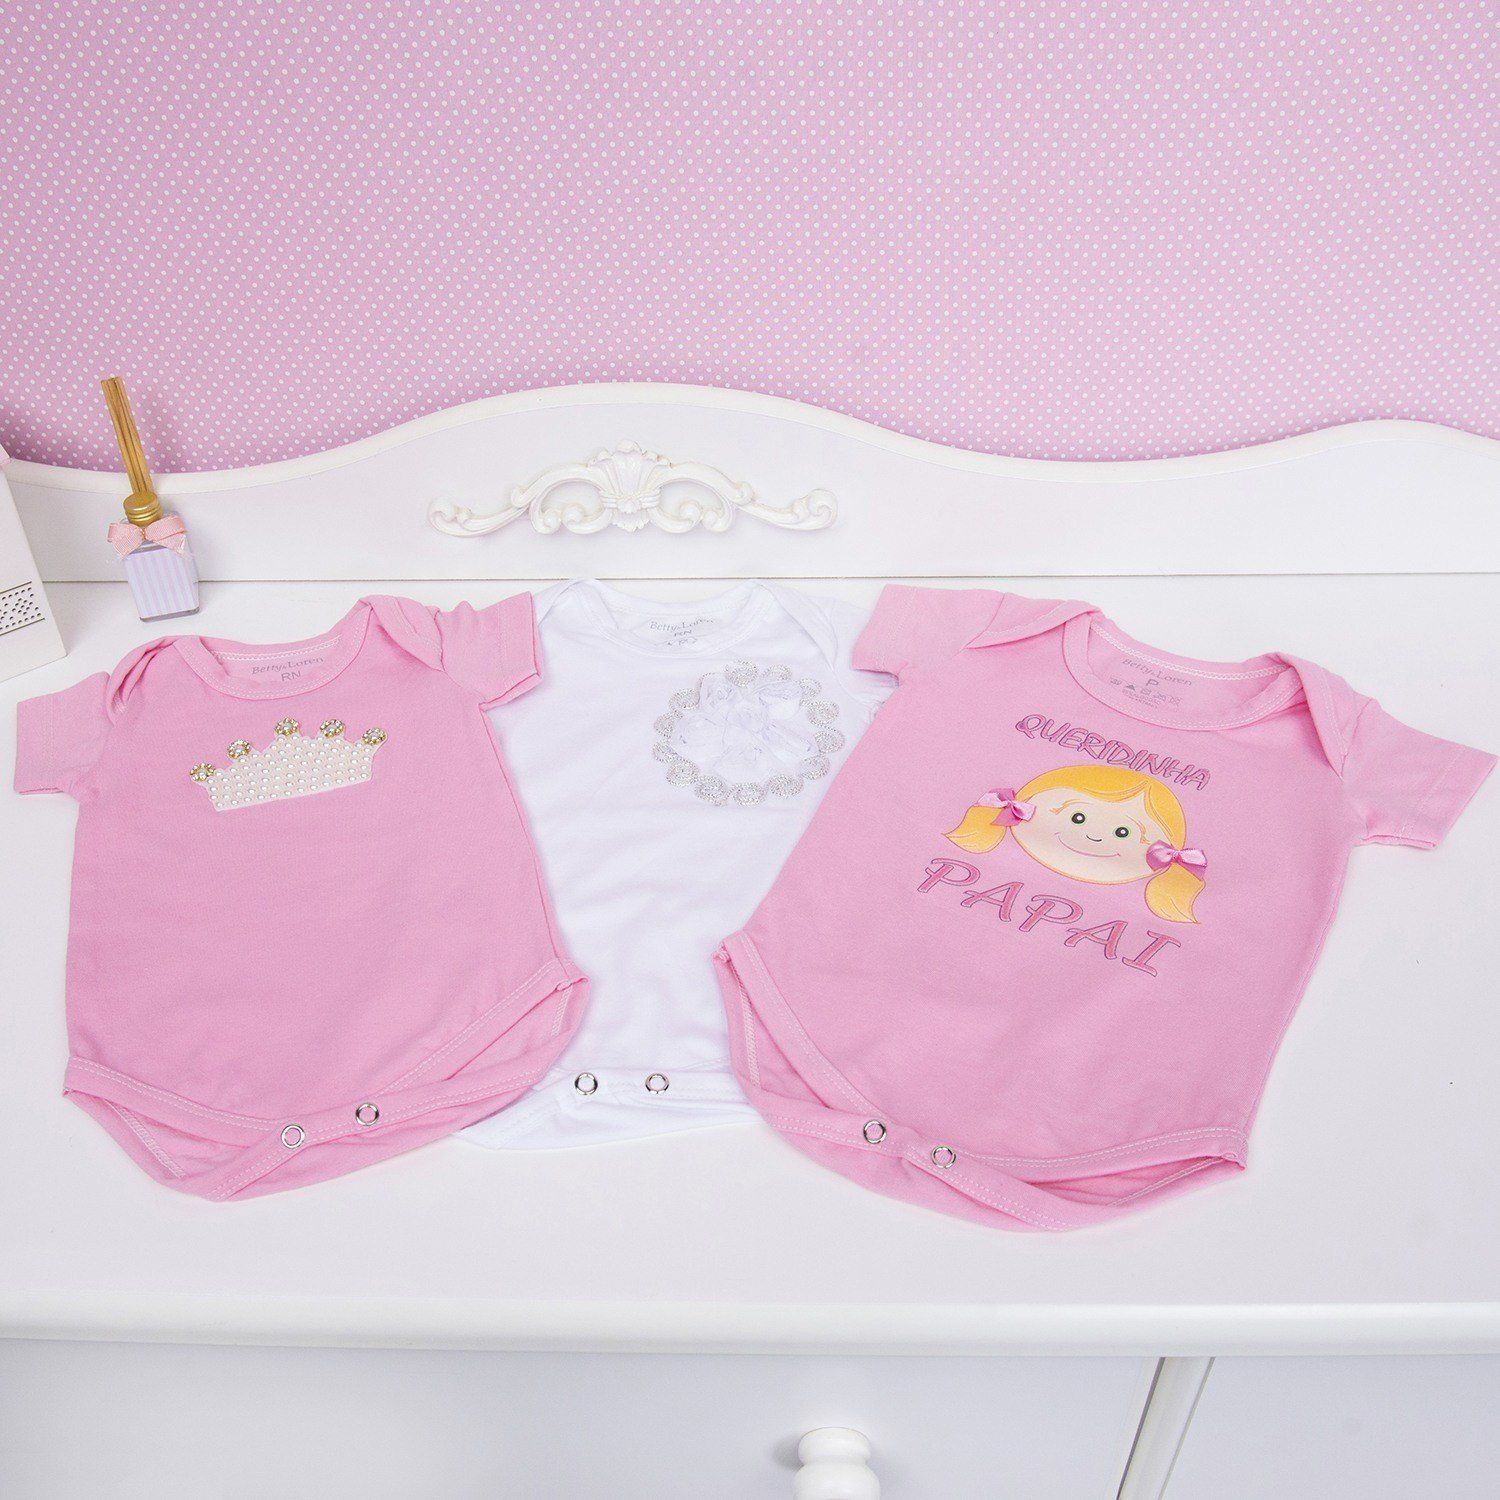 Conjunto de Bodies Manga Curta Princesinha do Papai 12 a 15 meses